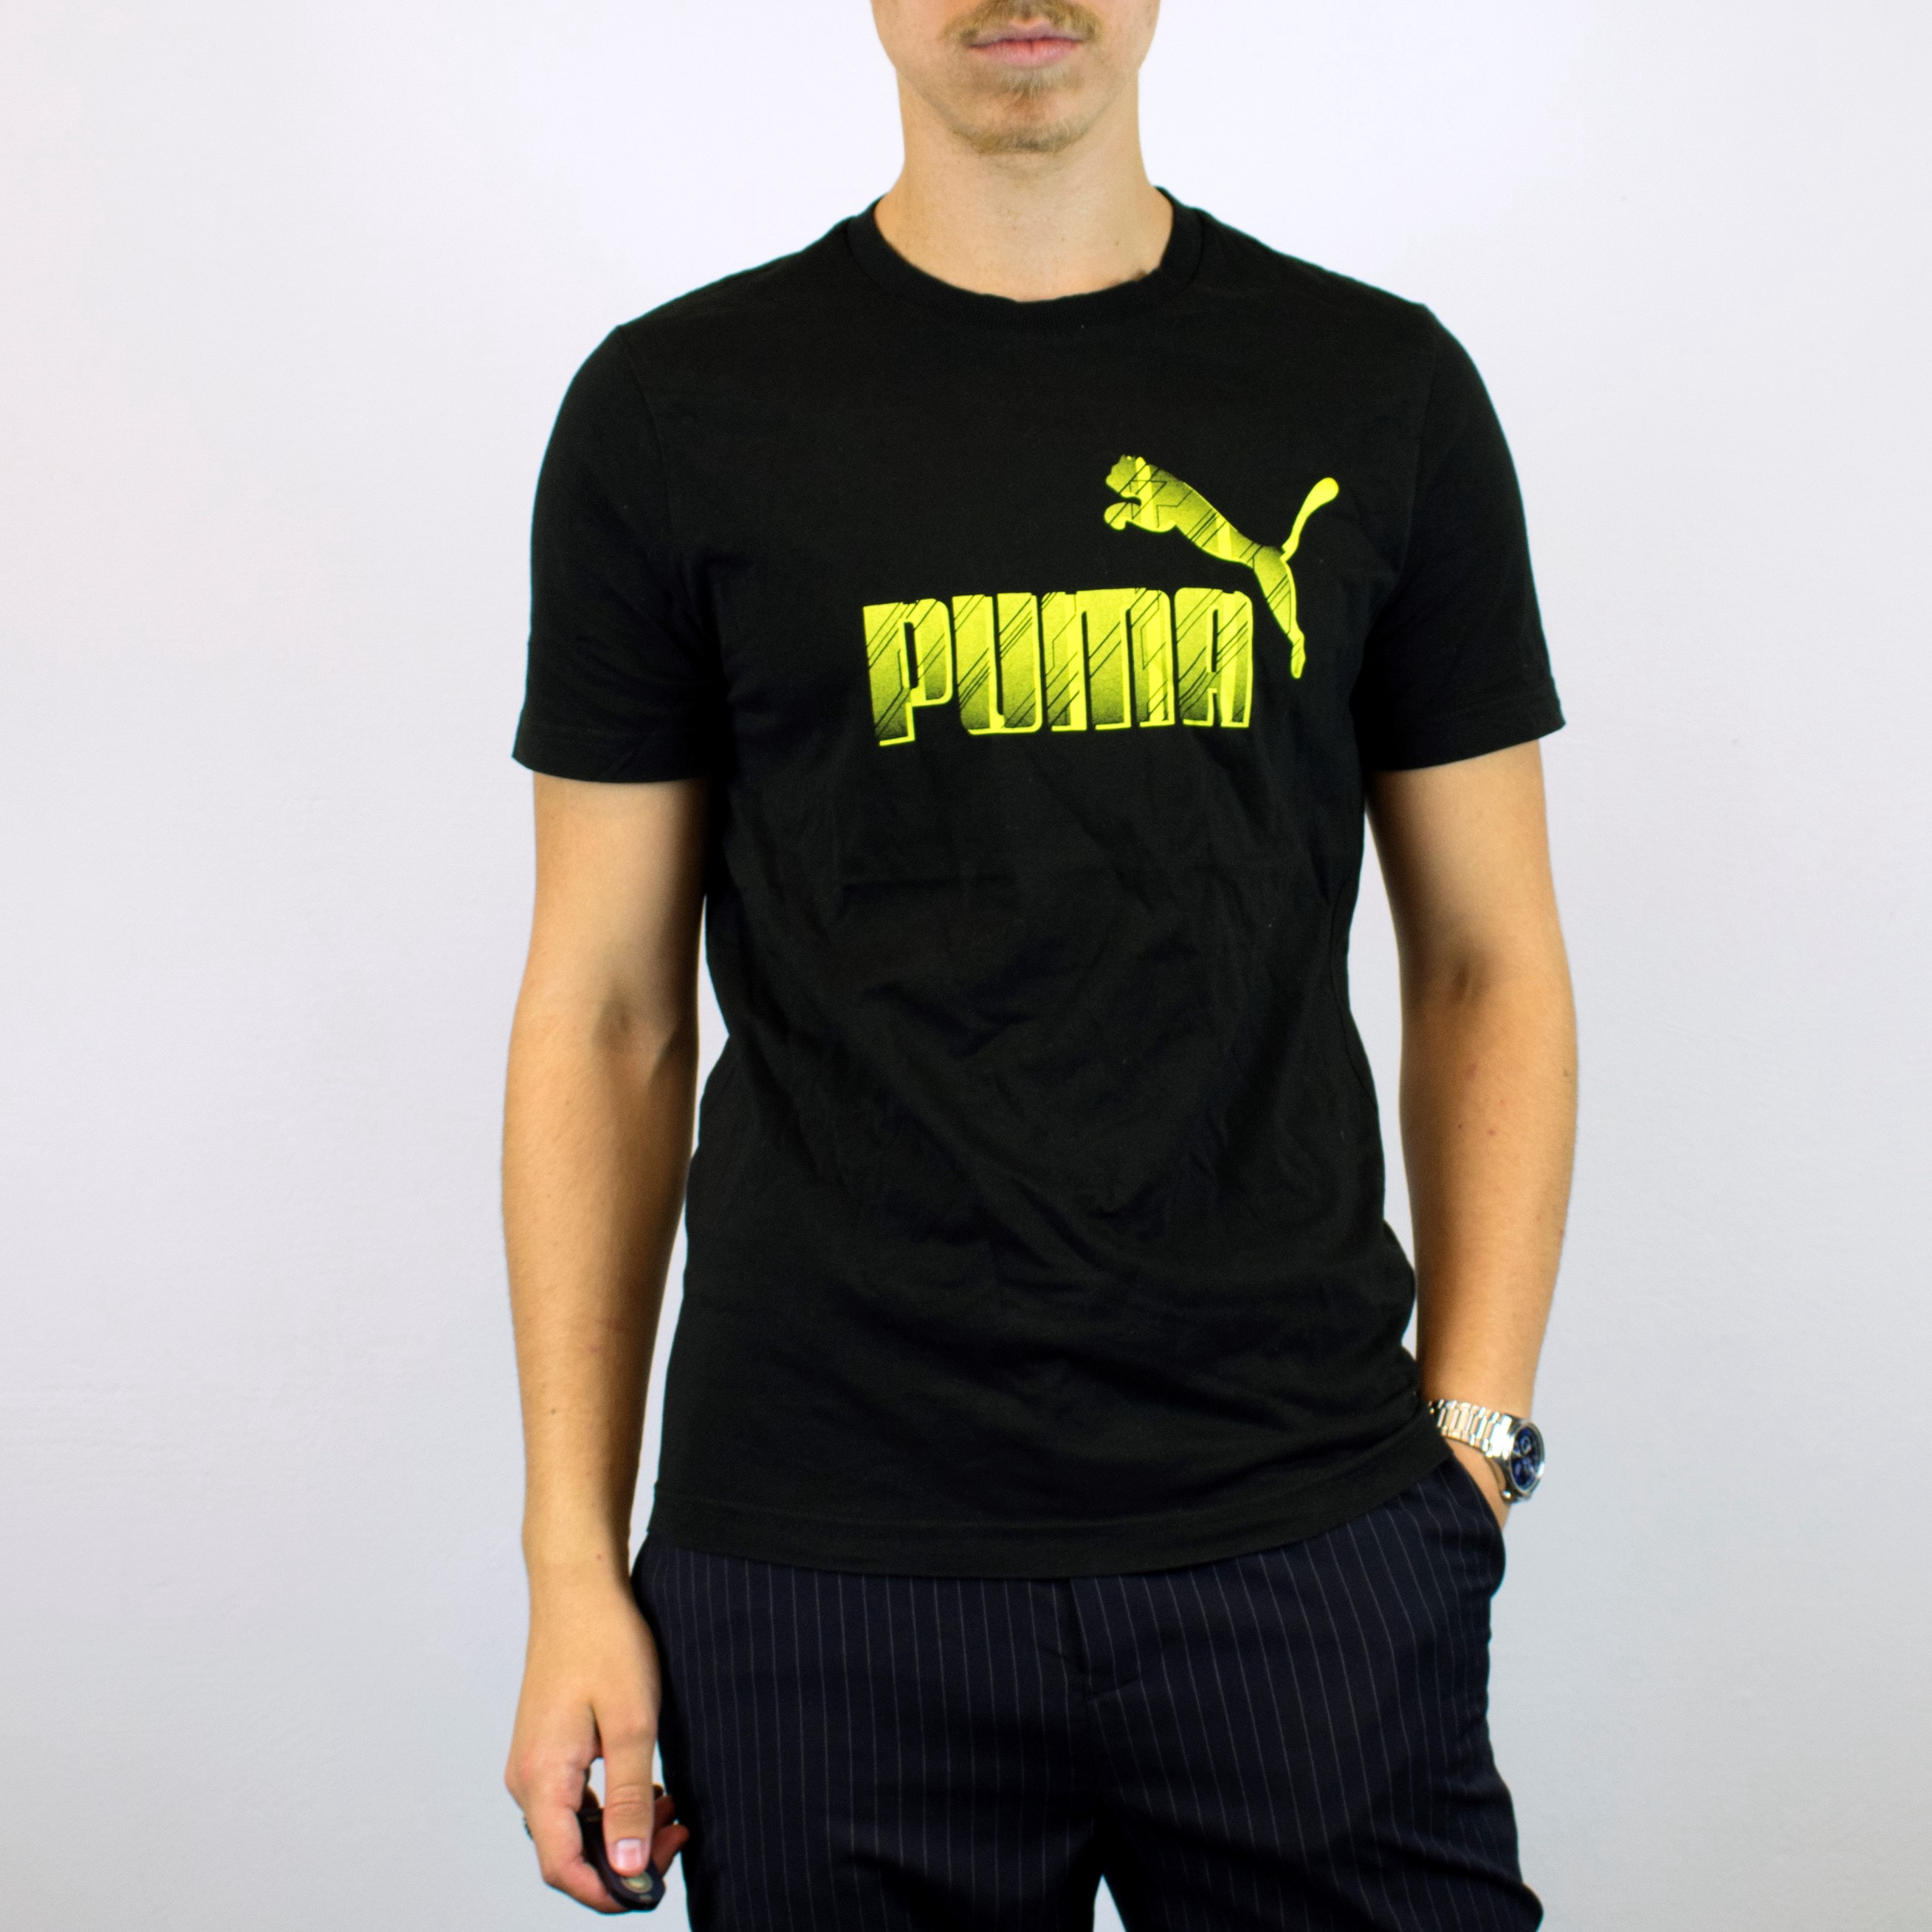 Unisex Vintage Puma t-shirt in black has a big spellout on the front size M/L